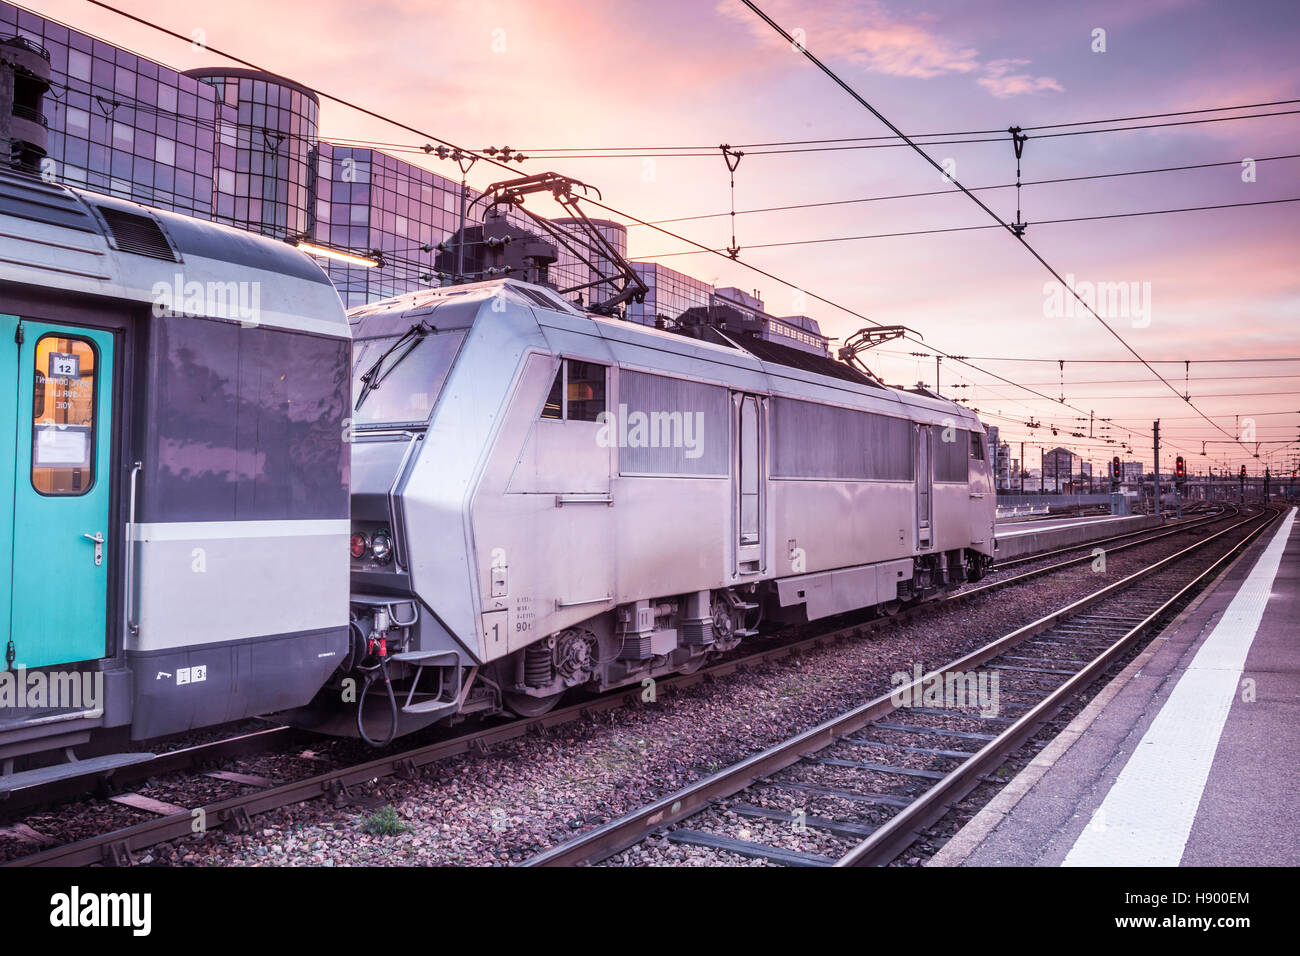 An intercity train awaits departure at Tours station. - Stock Image